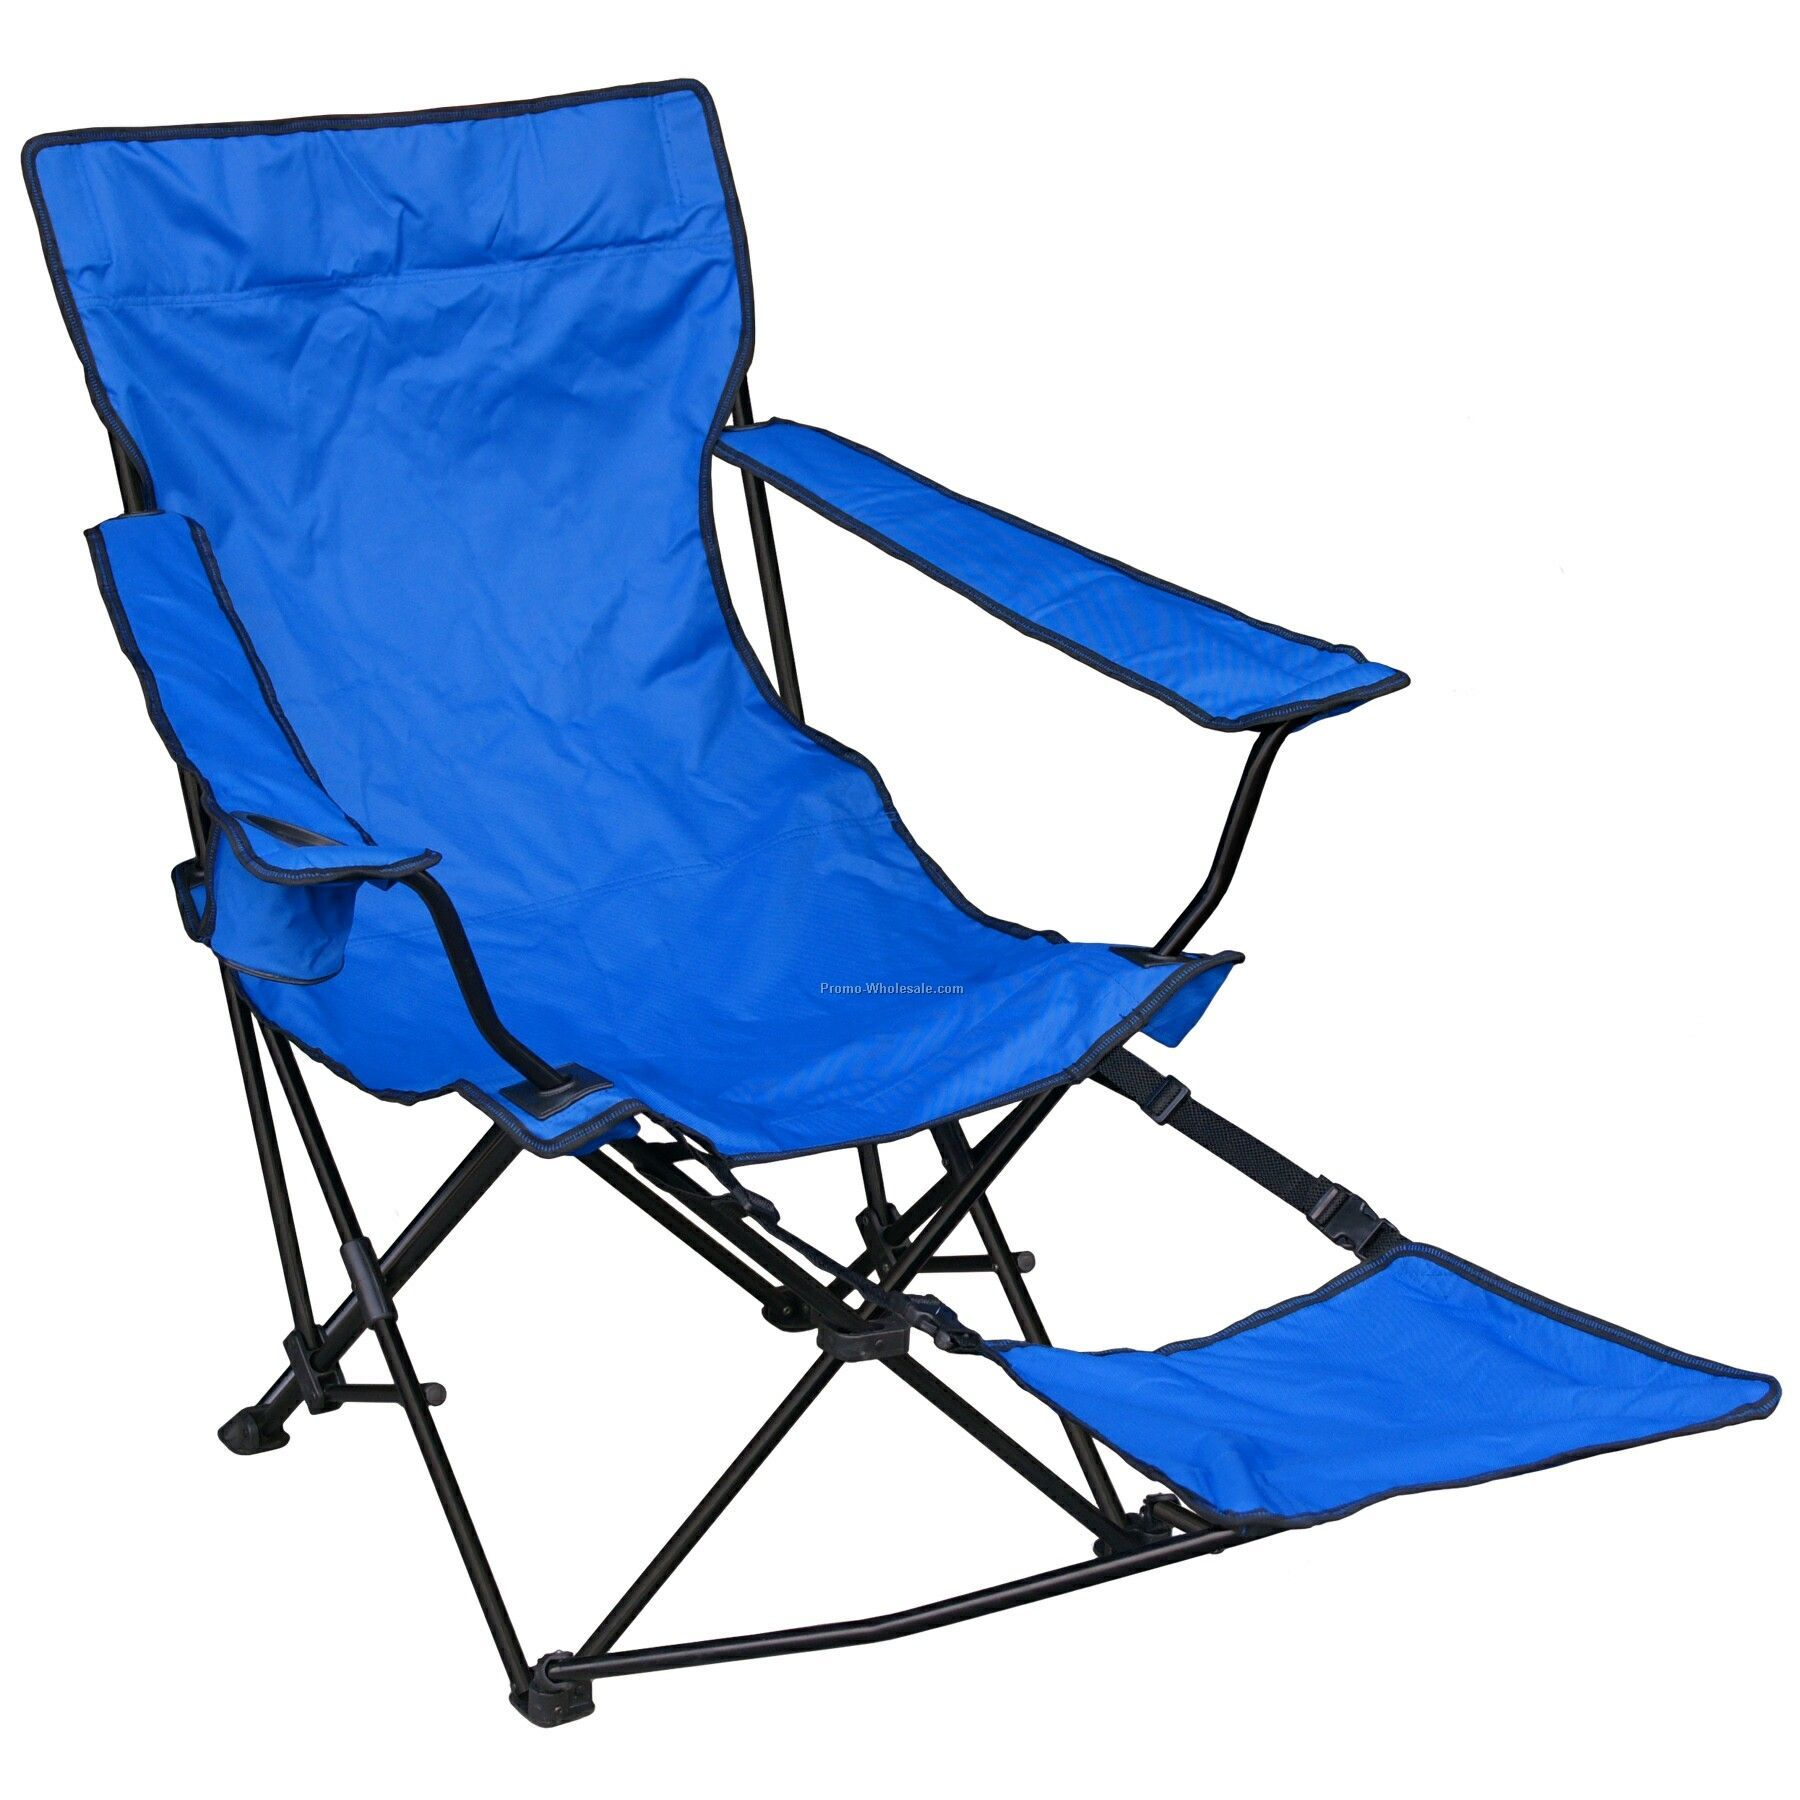 Camping Chair With Footrest Beach Chair W Arm Rests Wholesale China